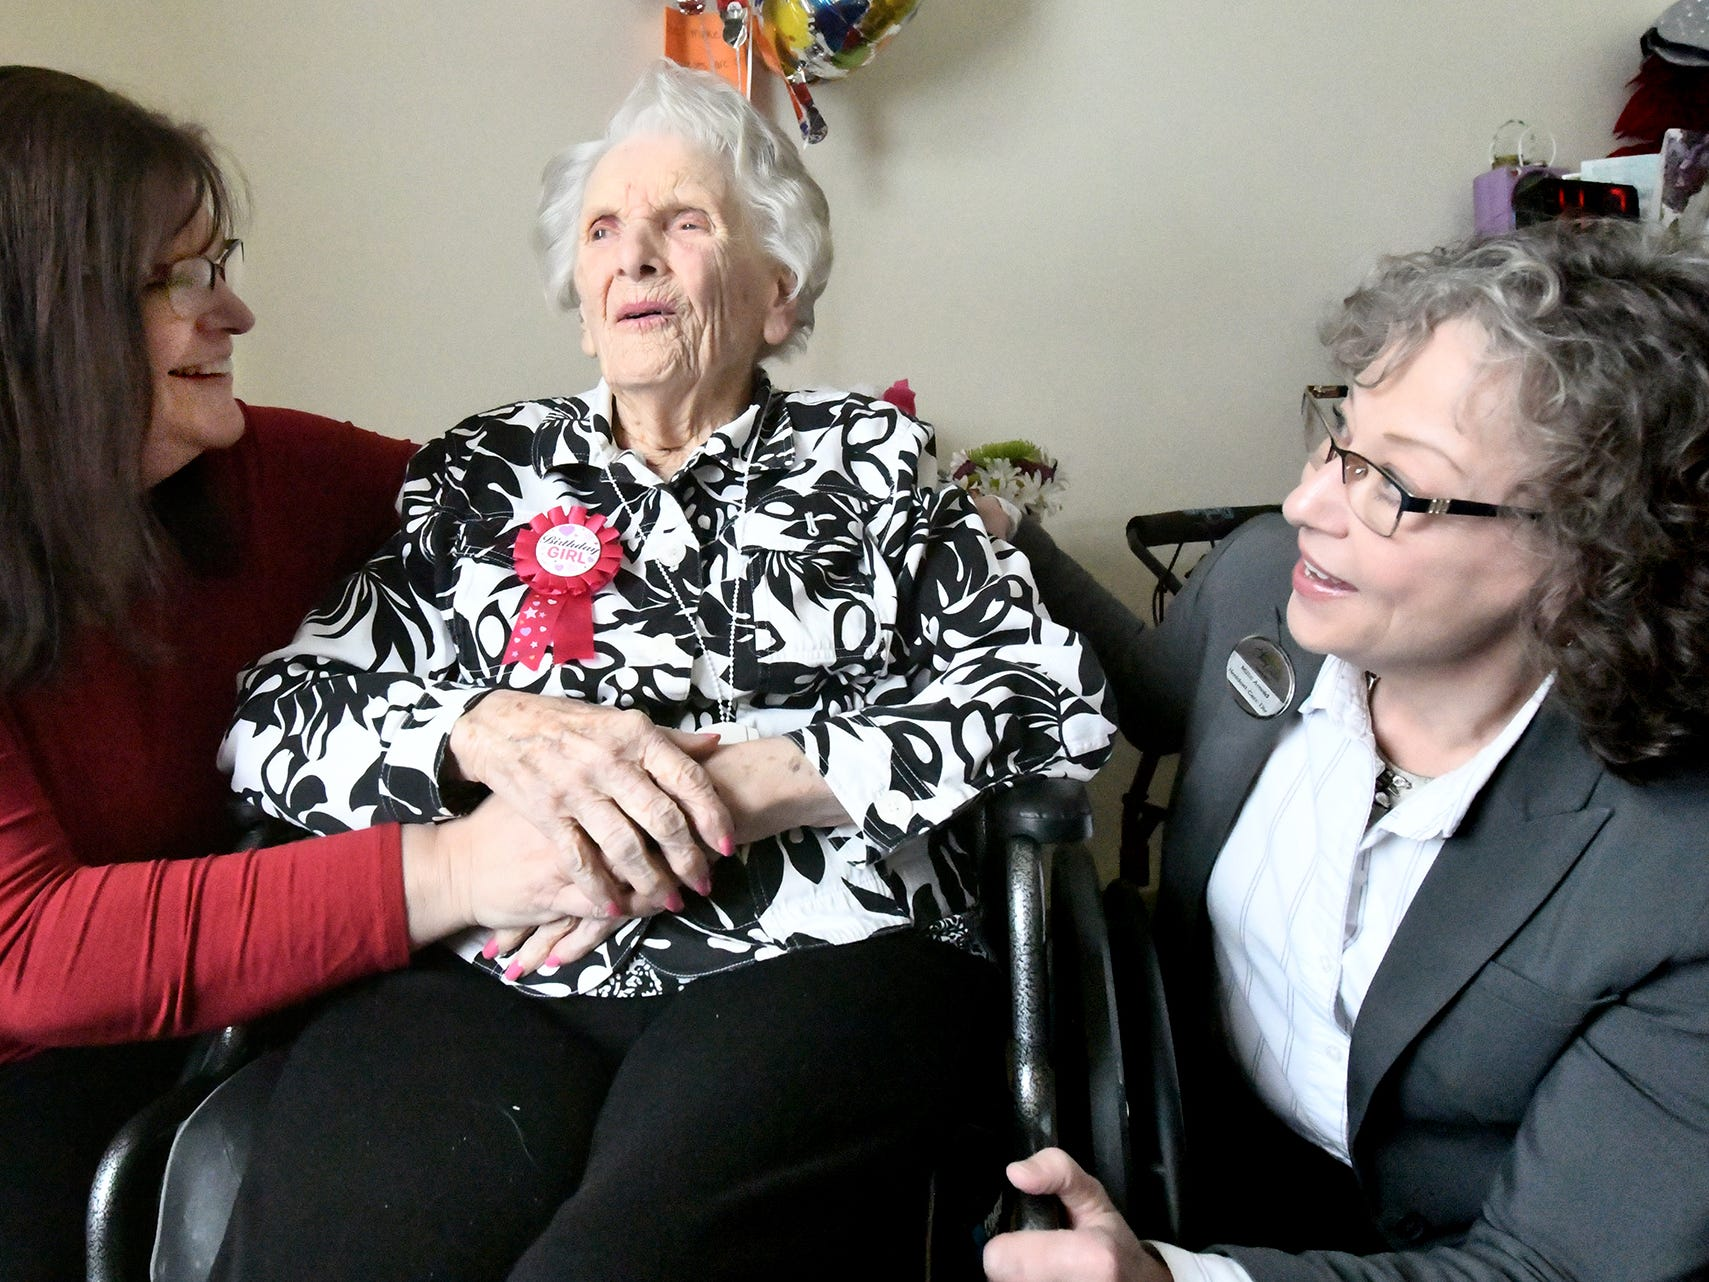 Senior Commons at Powder Mill Executive Director Winona Kissinger, left, and resident Care Director Millie Arnold talks with Ruth Kohler before her 104th birthday celebration Friday, Feb. 1, 2019. According to Commons staff, she is the oldest resident to have lived there. Bill Kalina photo